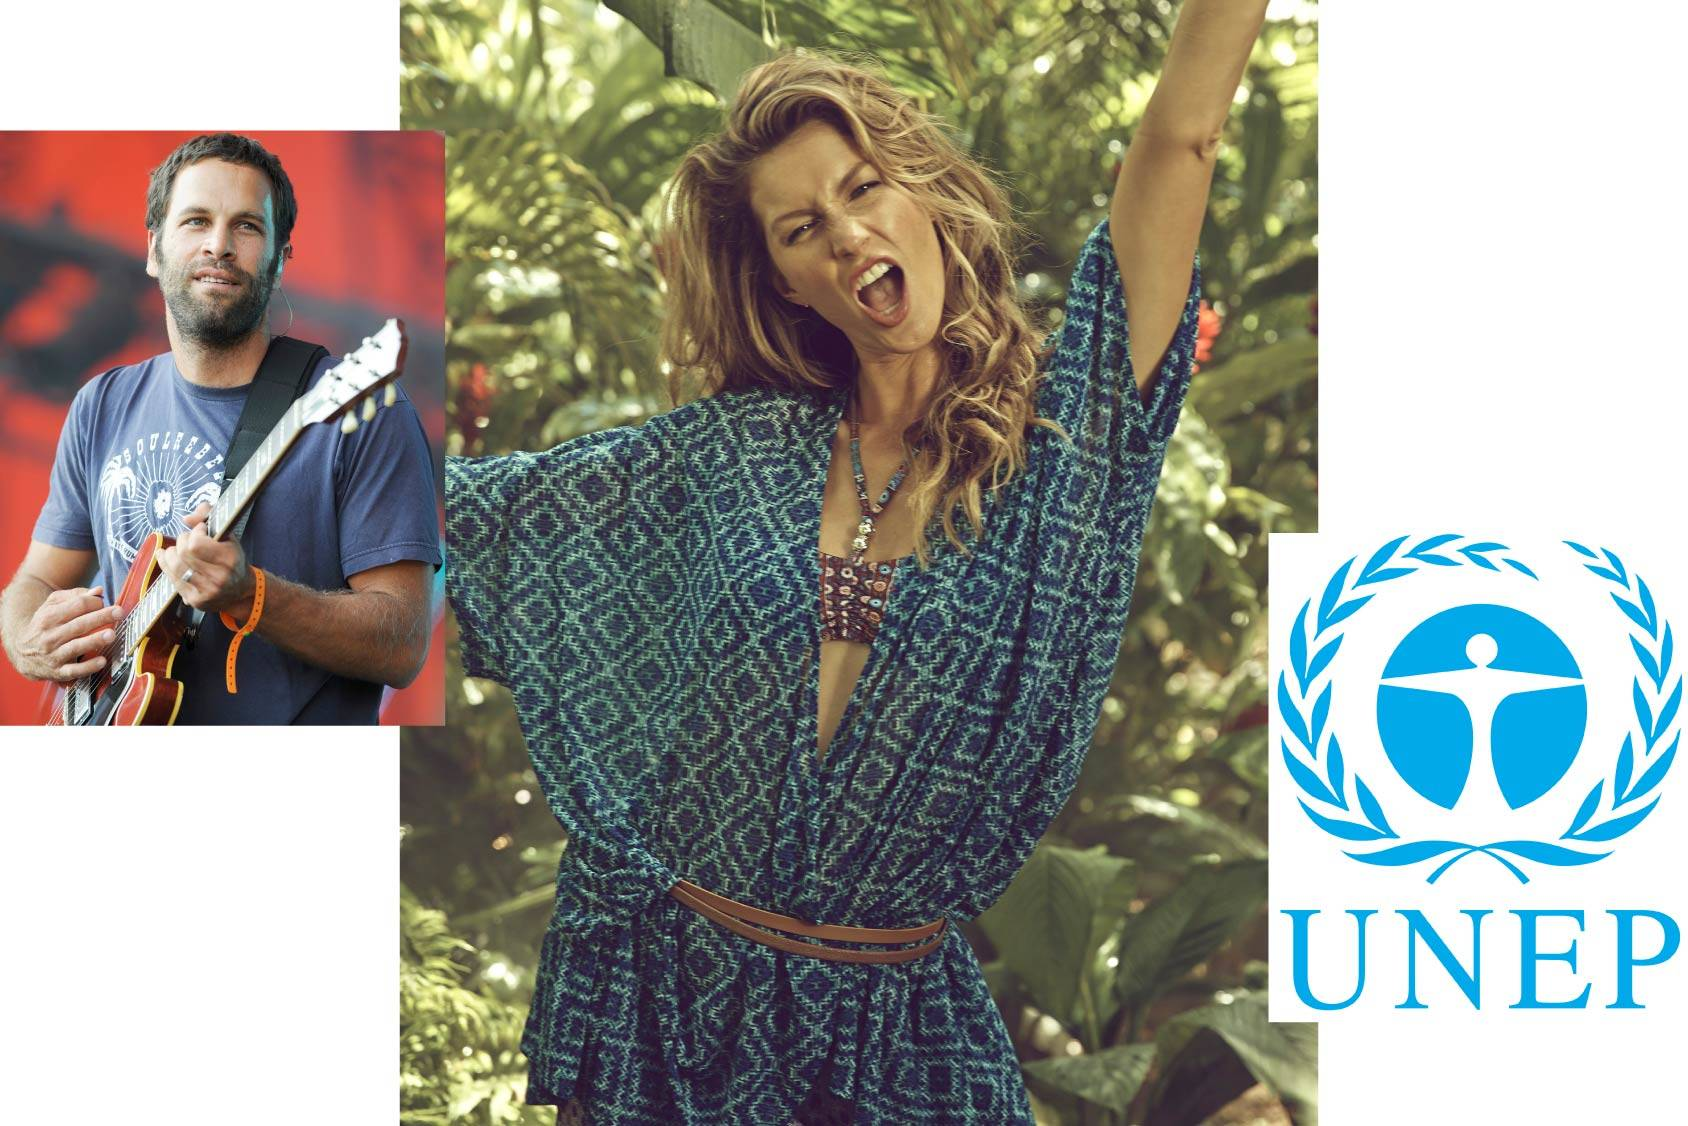 Gisele follows Jack Johnson on Spotify and the UNEP blog, All Over Press.